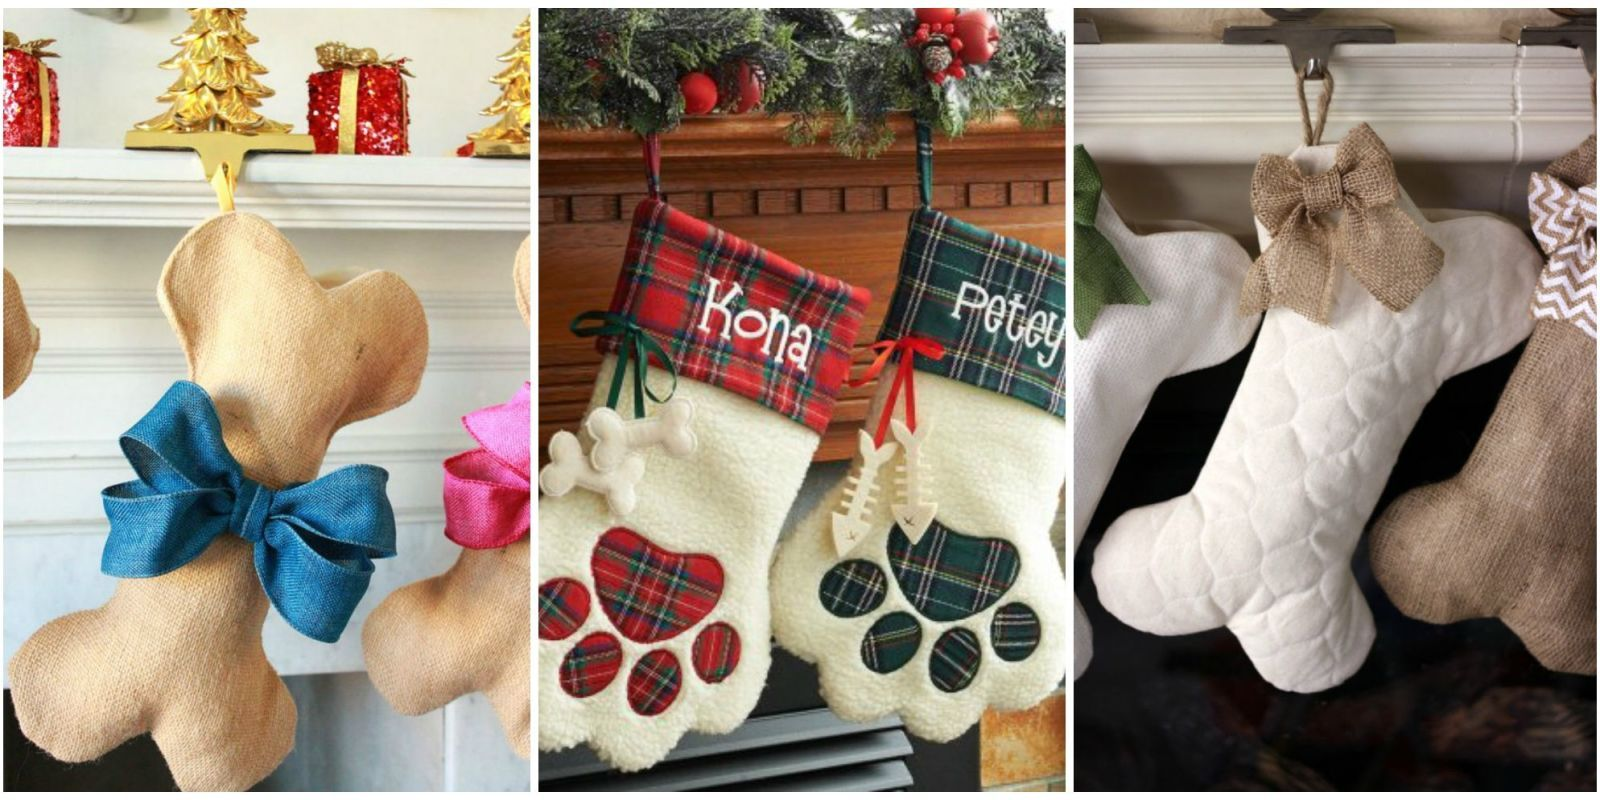 You Have A Christmas Stocking For Every Other Family Member, So Why Not The  Furry Ones, Too? Customize These Stockings For Dogs With Your Four Legged  ...